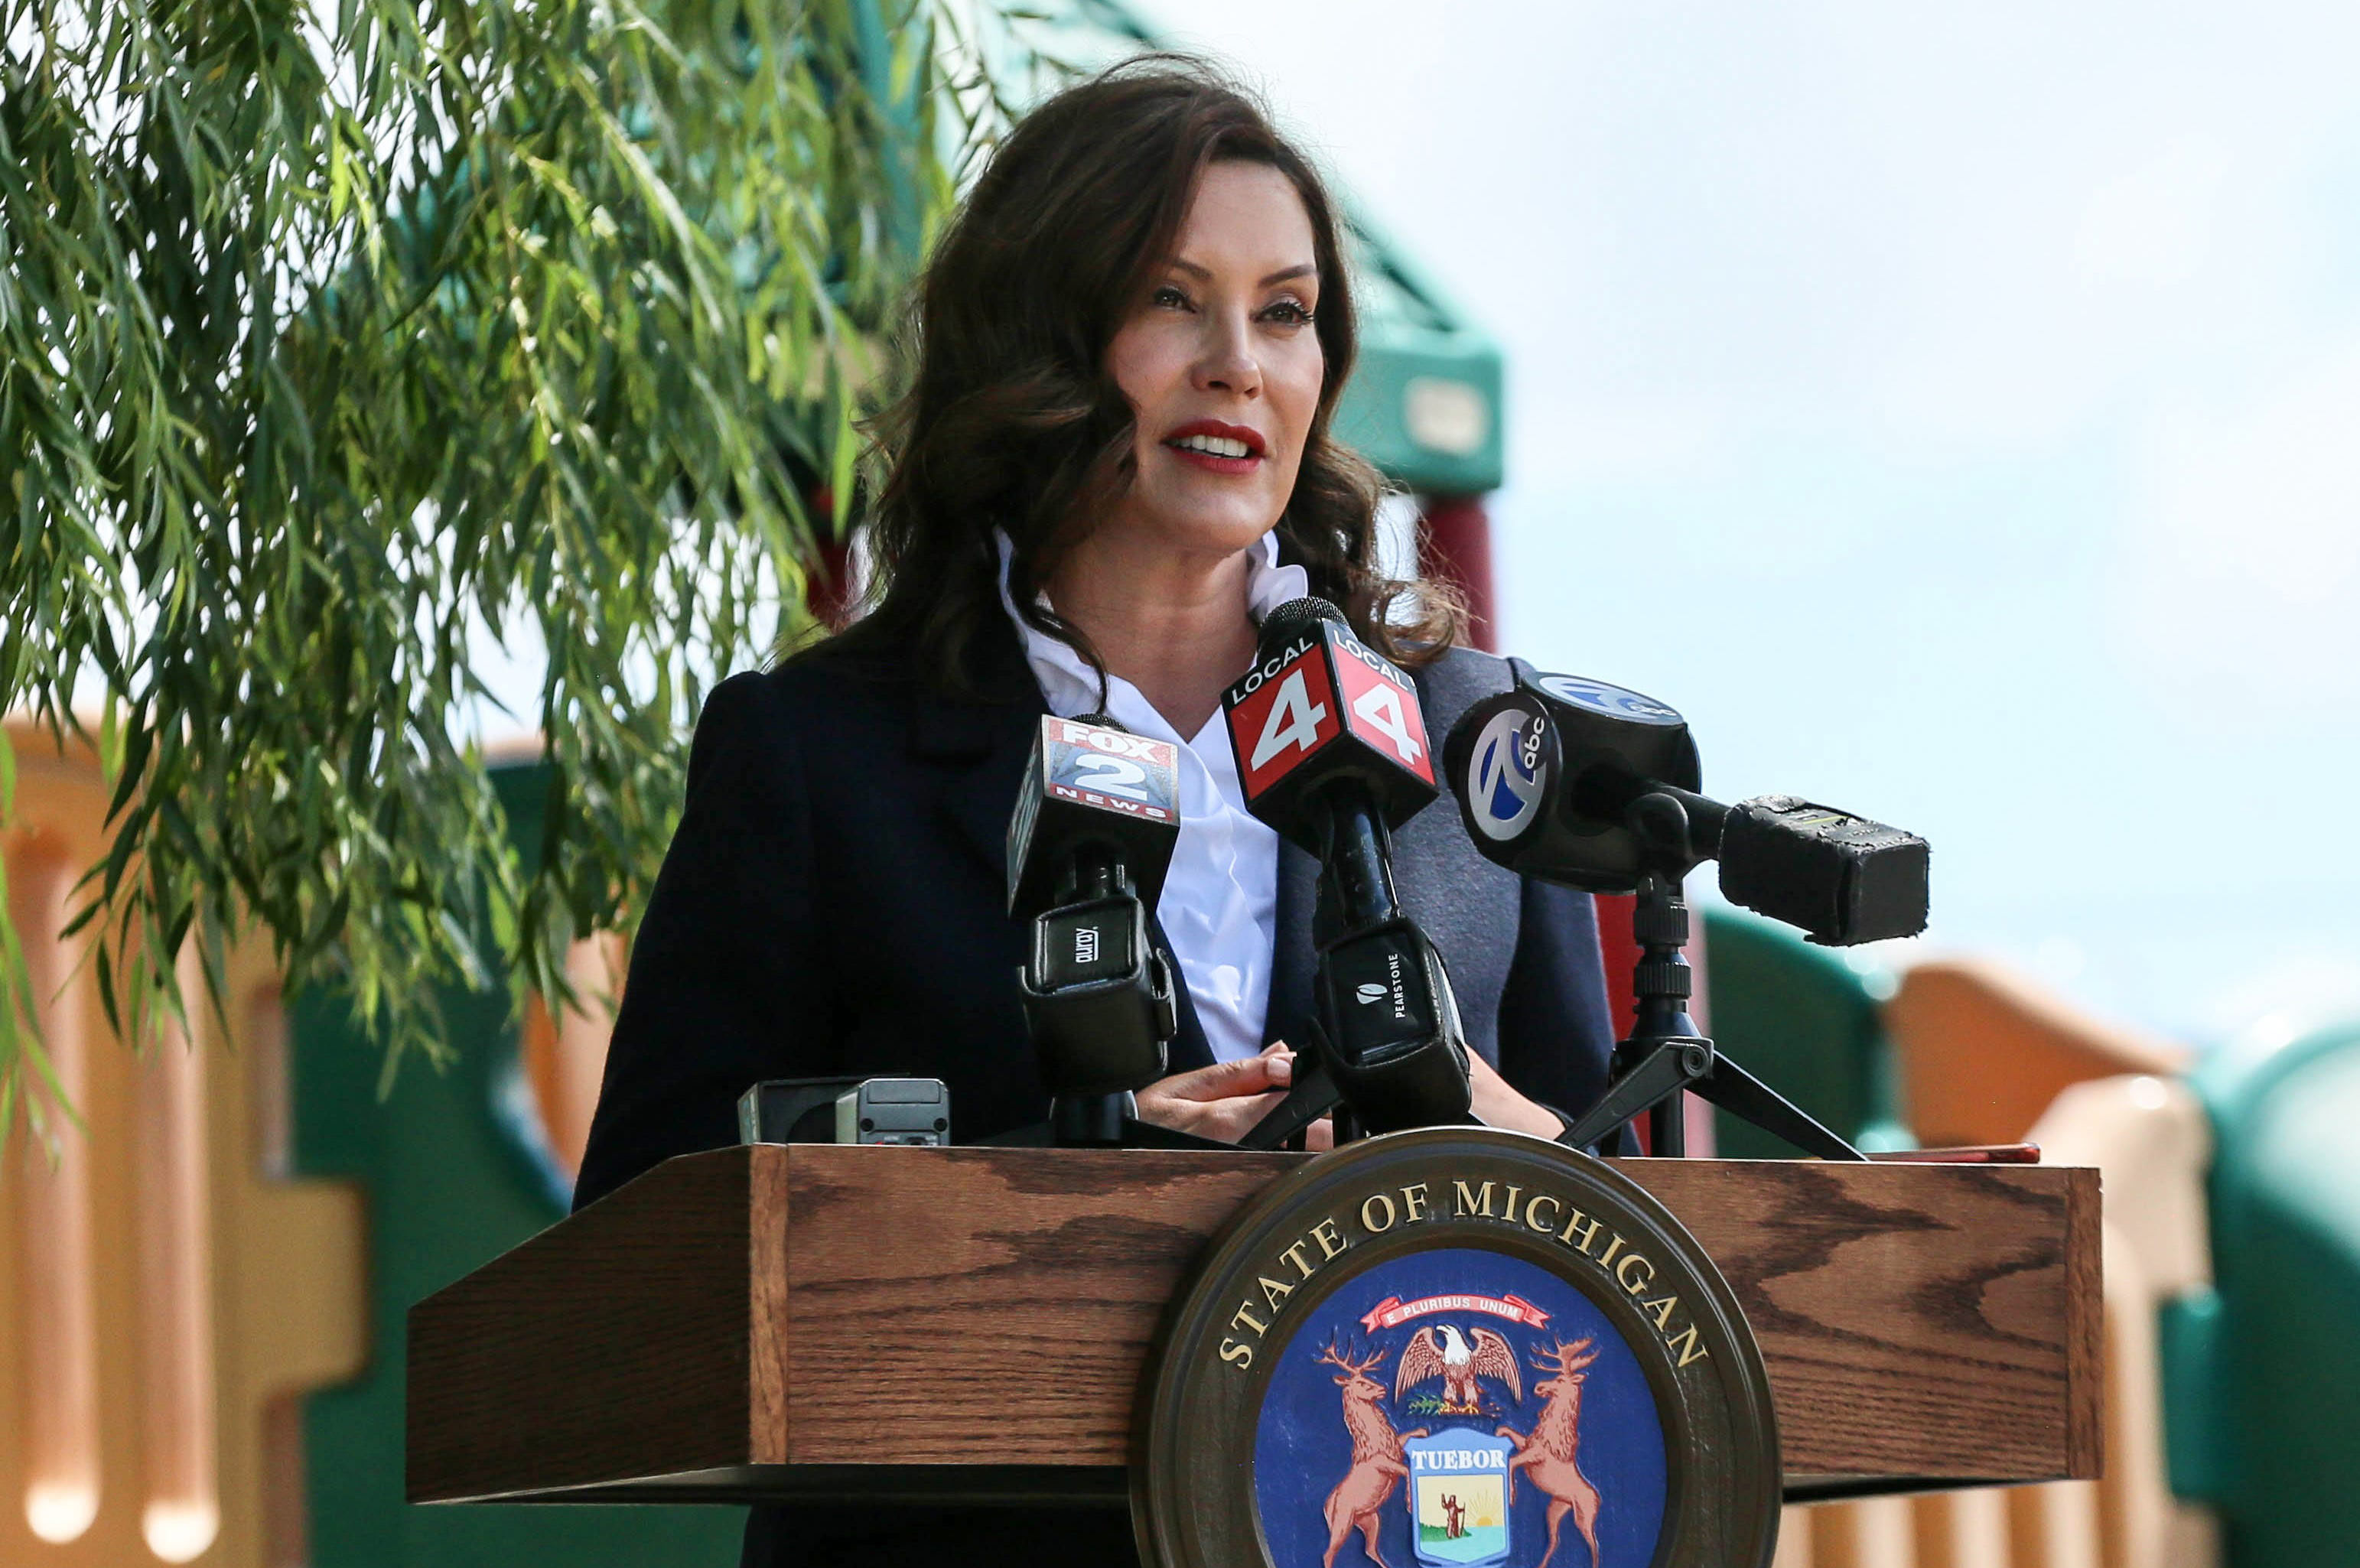 Michigan Gov. Gretchen Whitmer speaks during press conference at Troy Babes in Toyland in Troy, Michigan, on June 14.